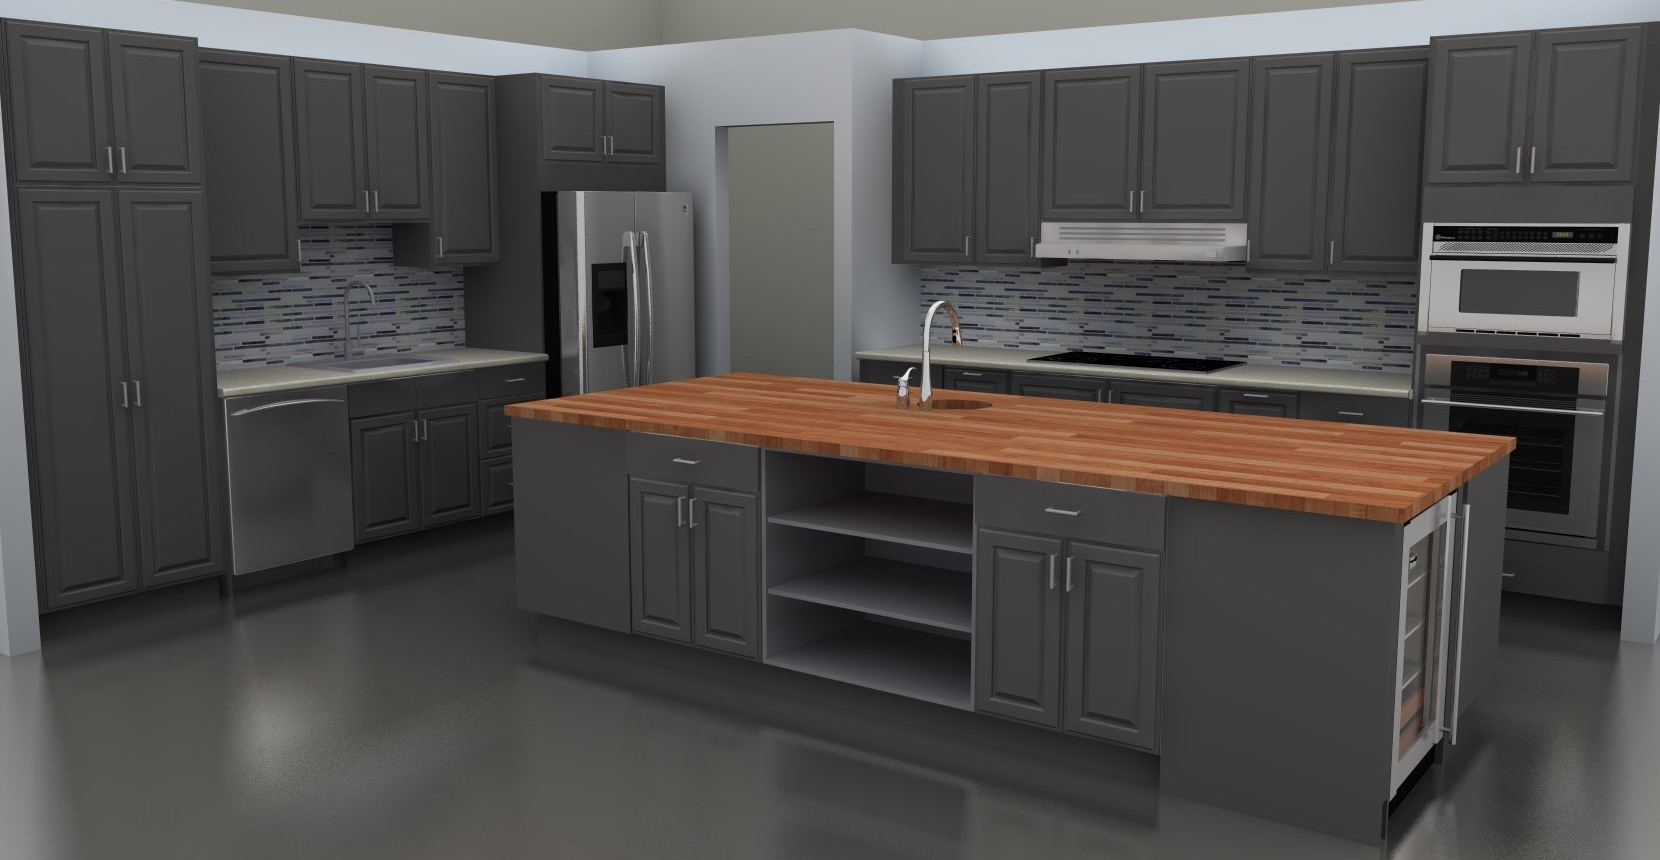 Stylish lidingo gray doors for a new ikea kitchen for Kitchen cabinets ikea